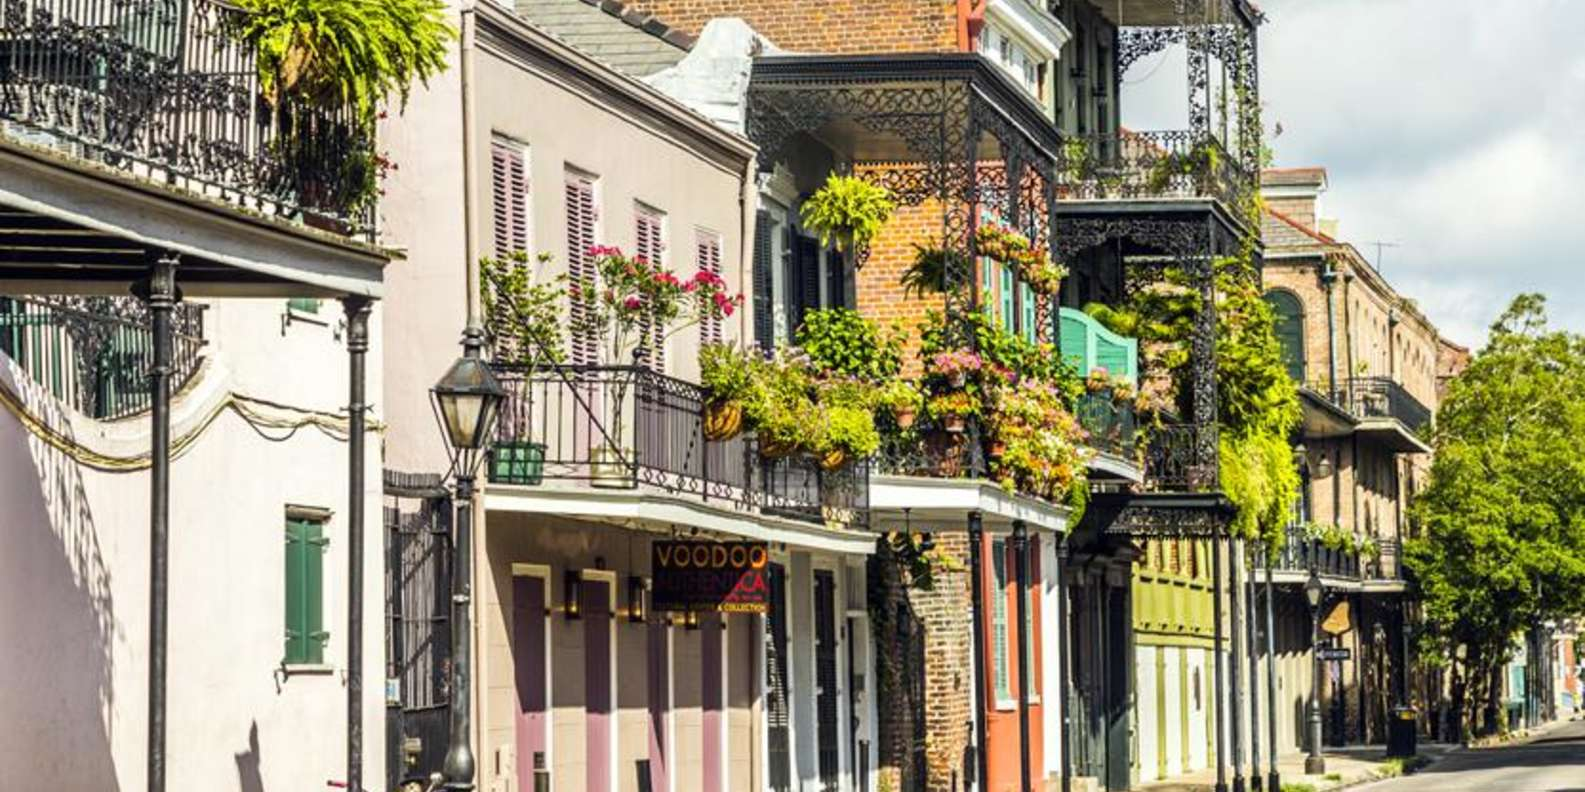 Learn about New Orleans on a Walking Tour